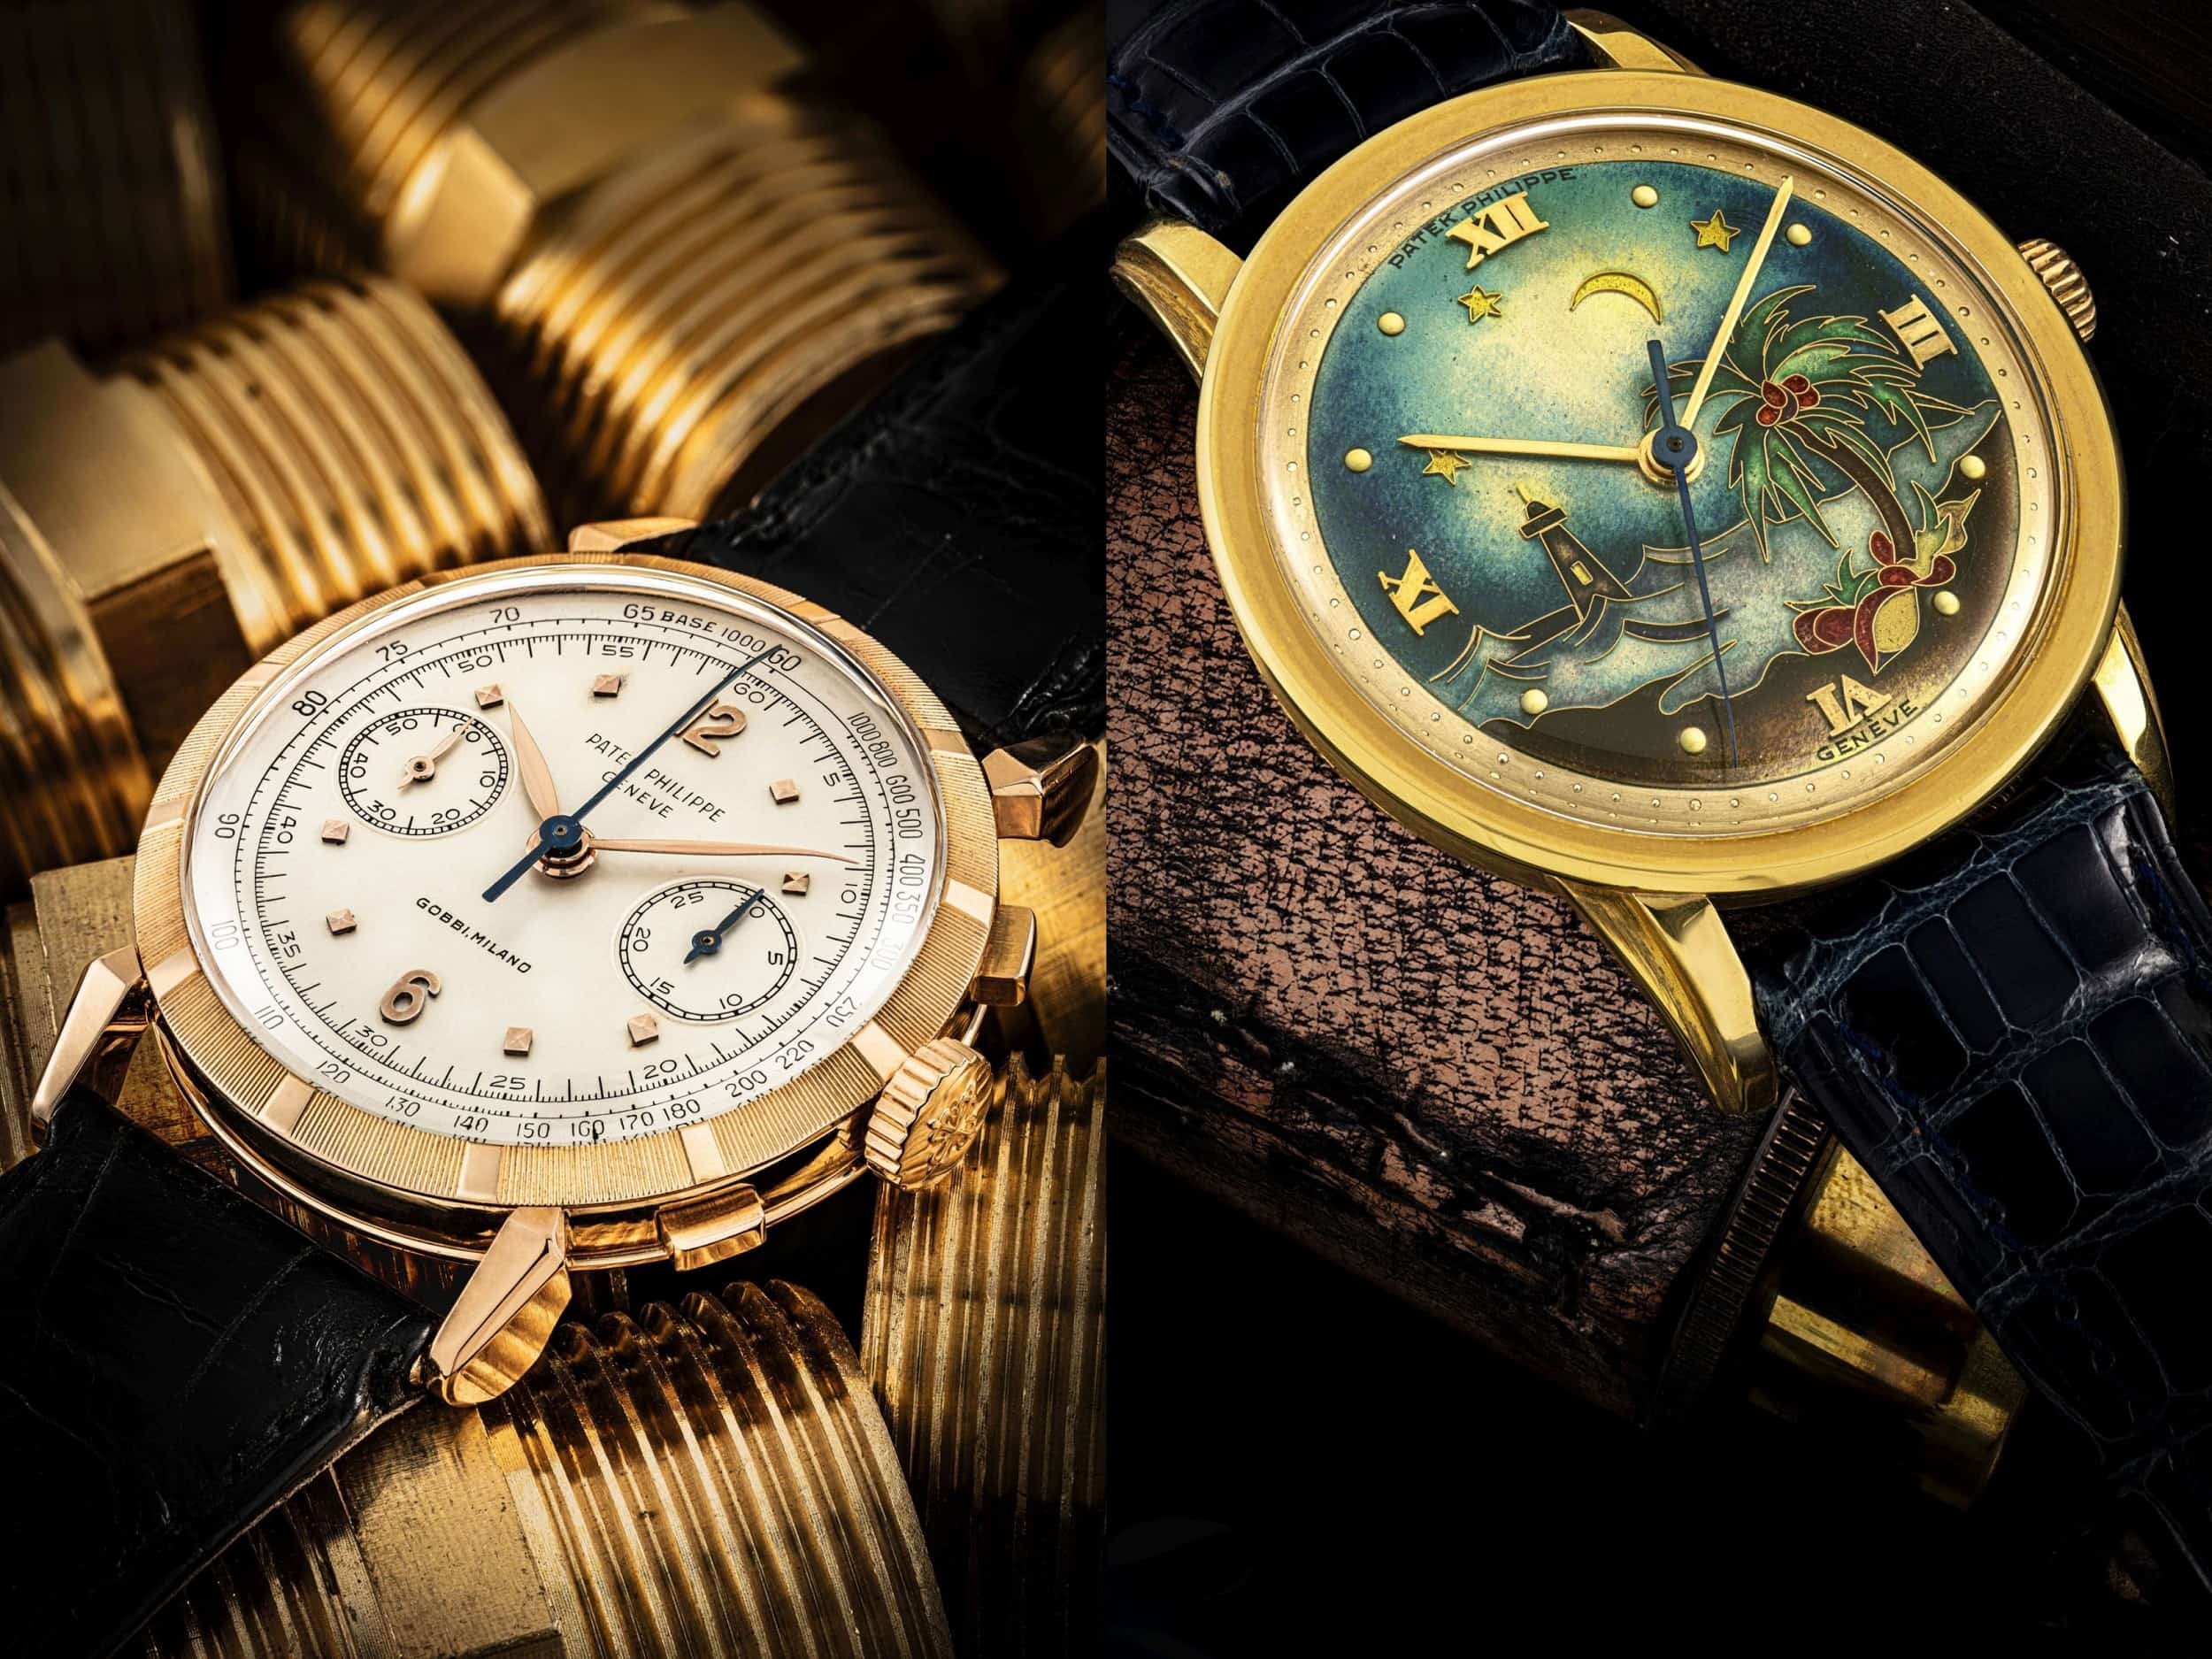 Uhrenauktion Christie's in Hong Kong28.440.551 €: Christie's Hong Kong Watches Uhrenauktion mit Rekordergebnis